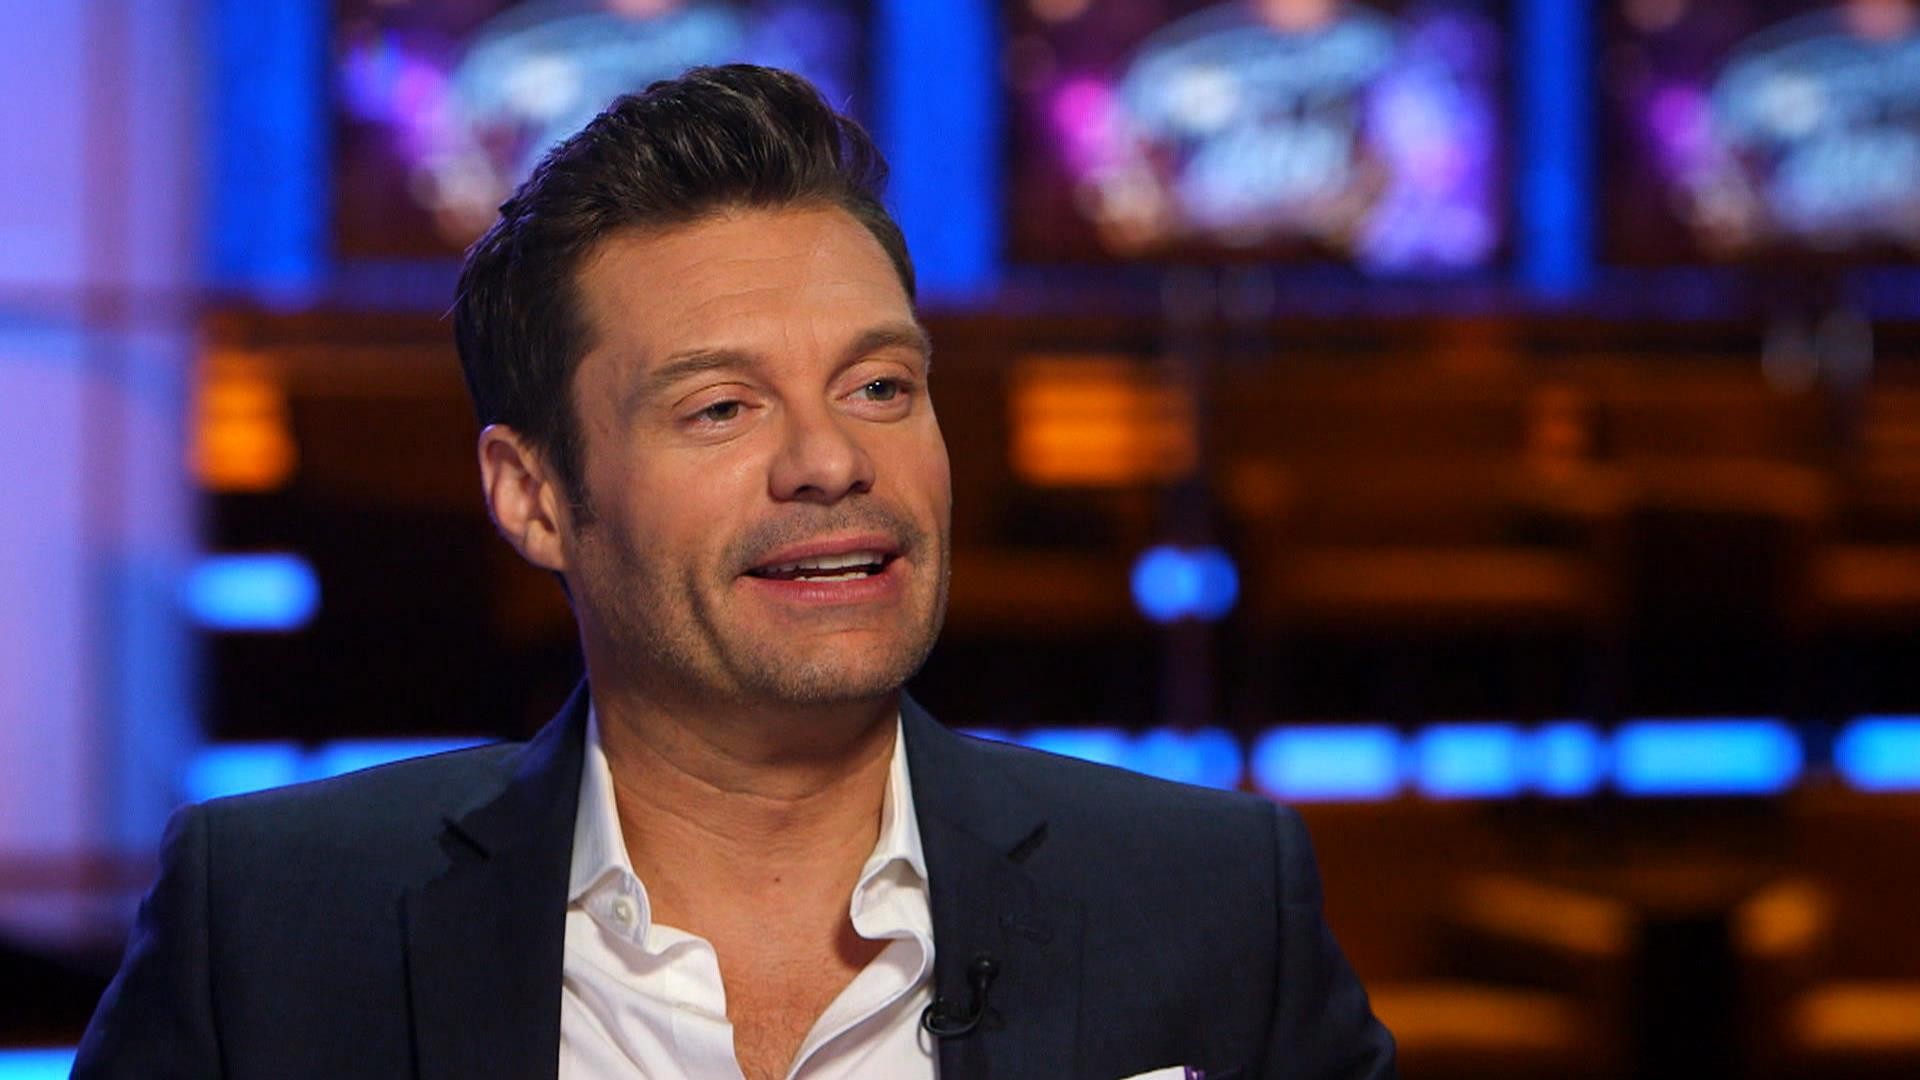 Ryan Seacrest on American Idol 'Home' of 15 Years, His Fear of Failing